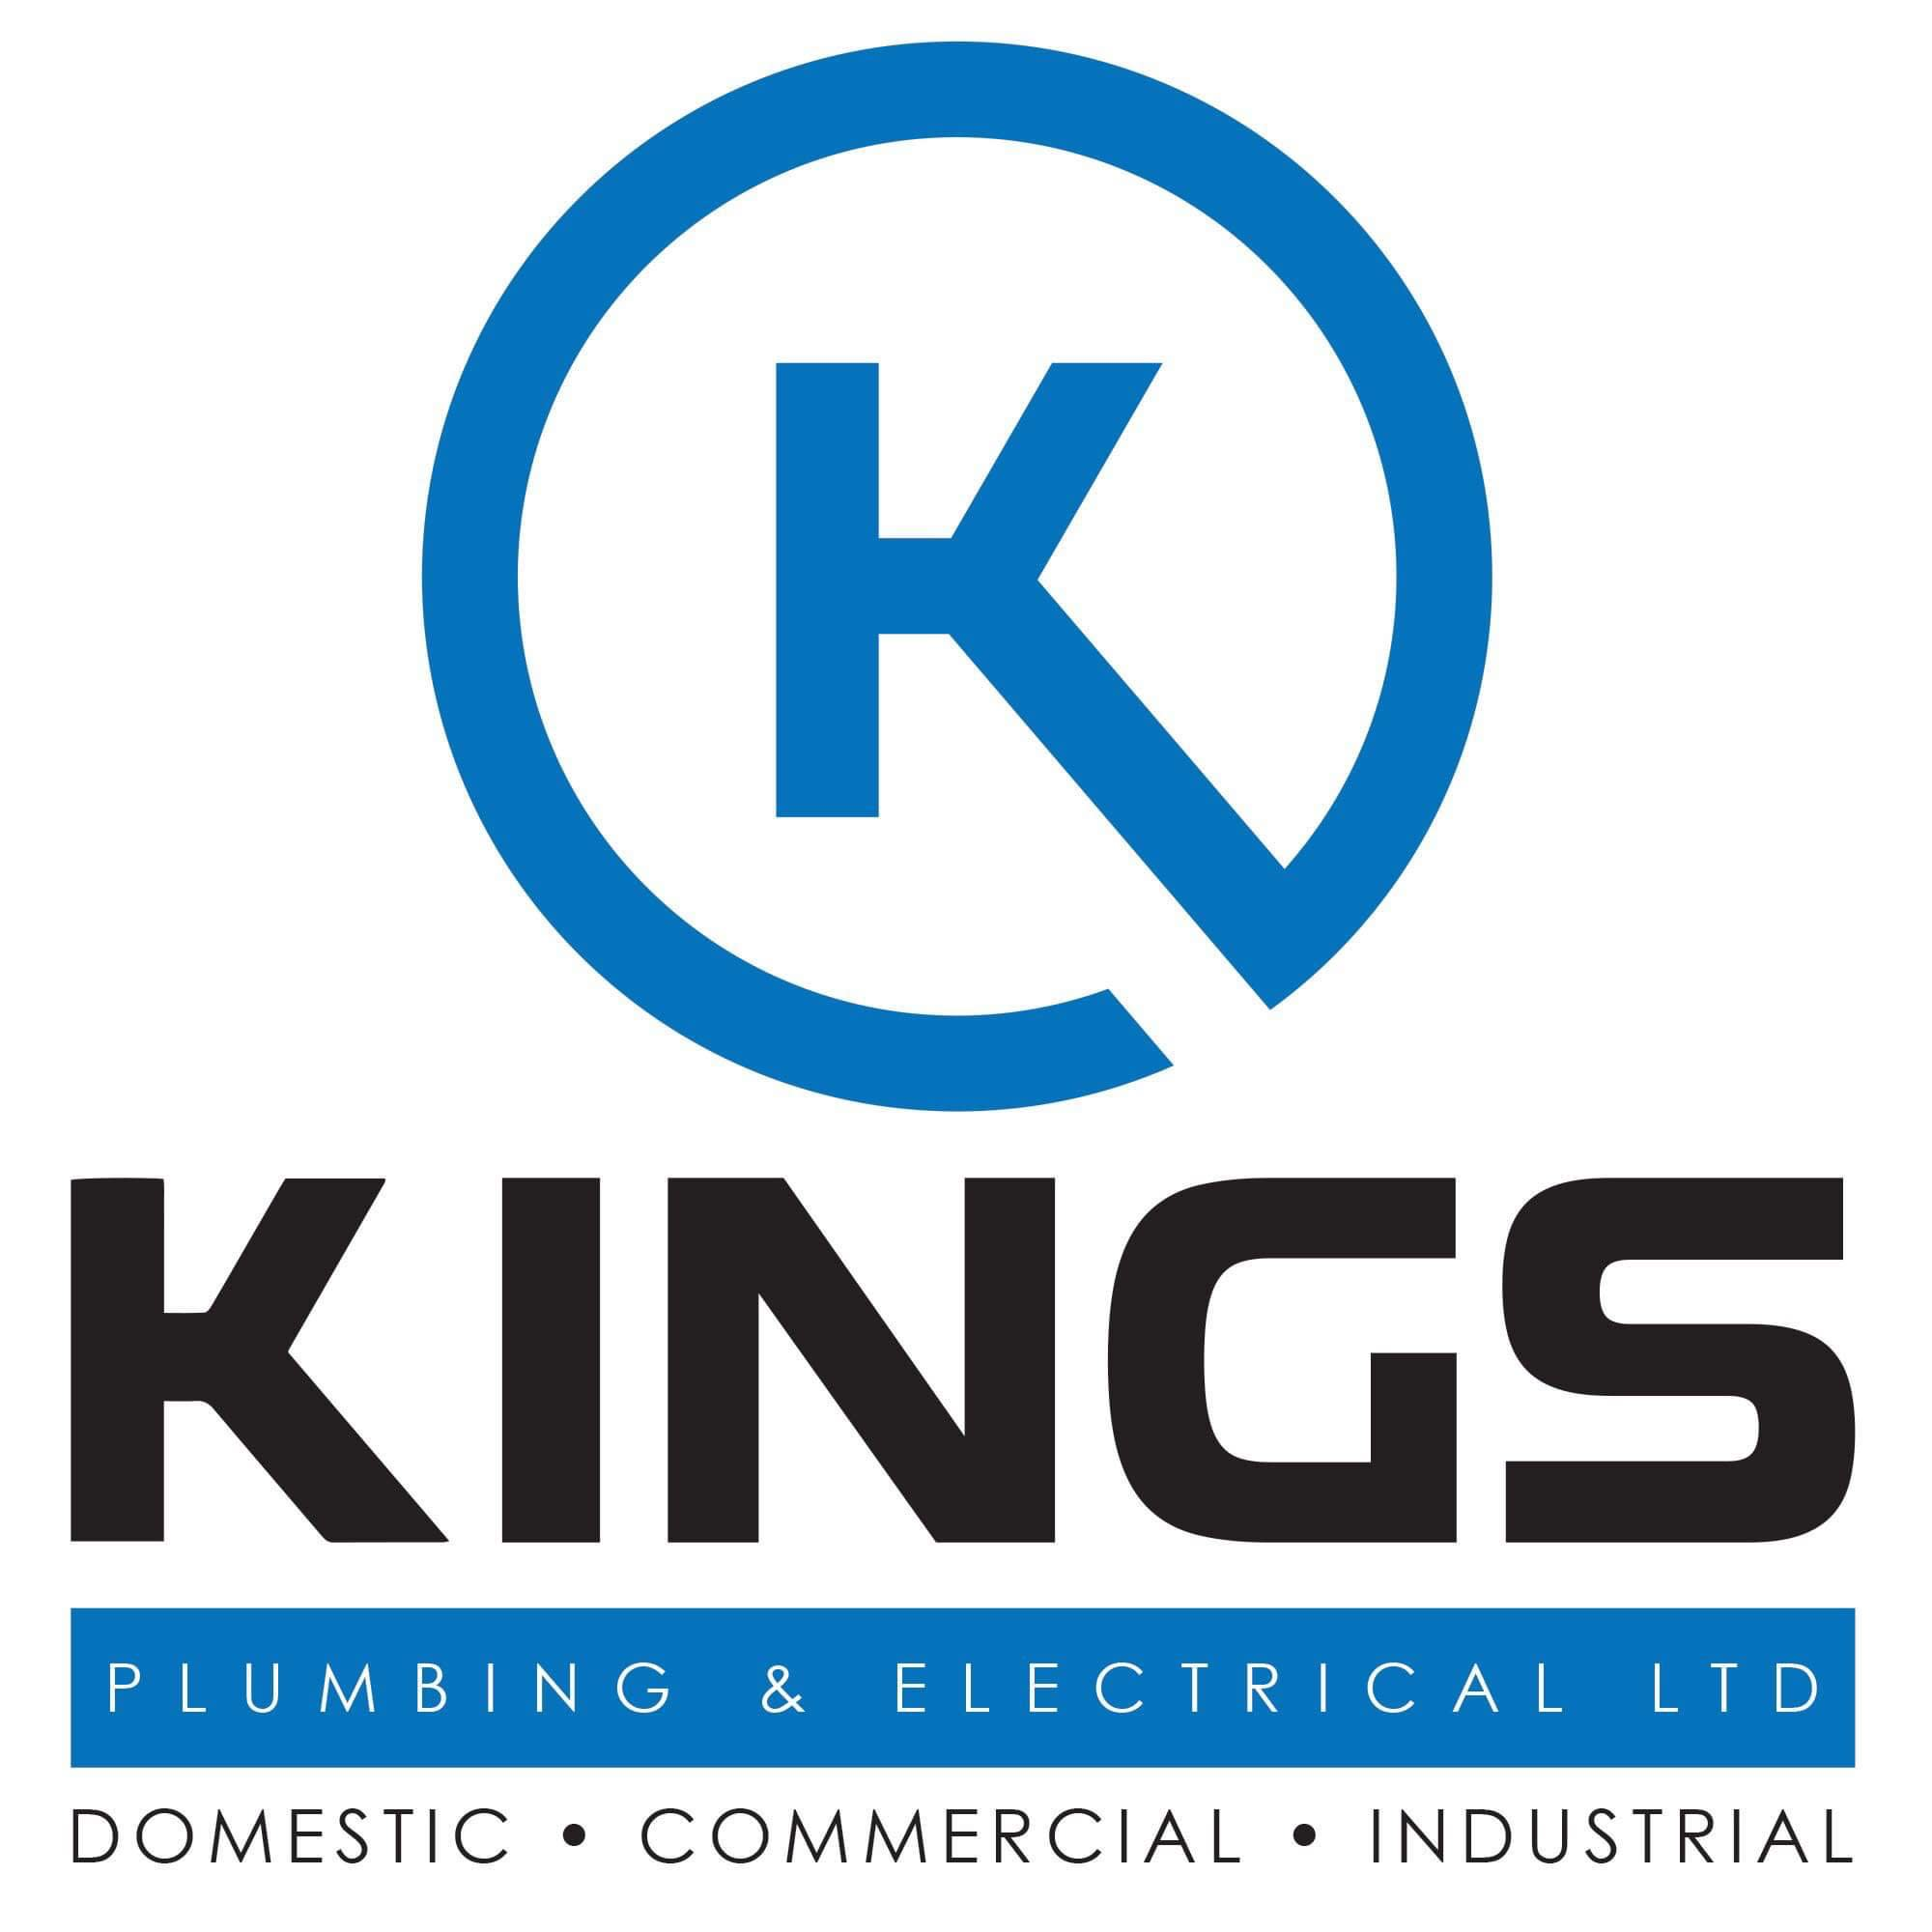 Kings Plumbing & Electrical Ltd - Chard, Somerset  - 01460 220584 | ShowMeLocal.com